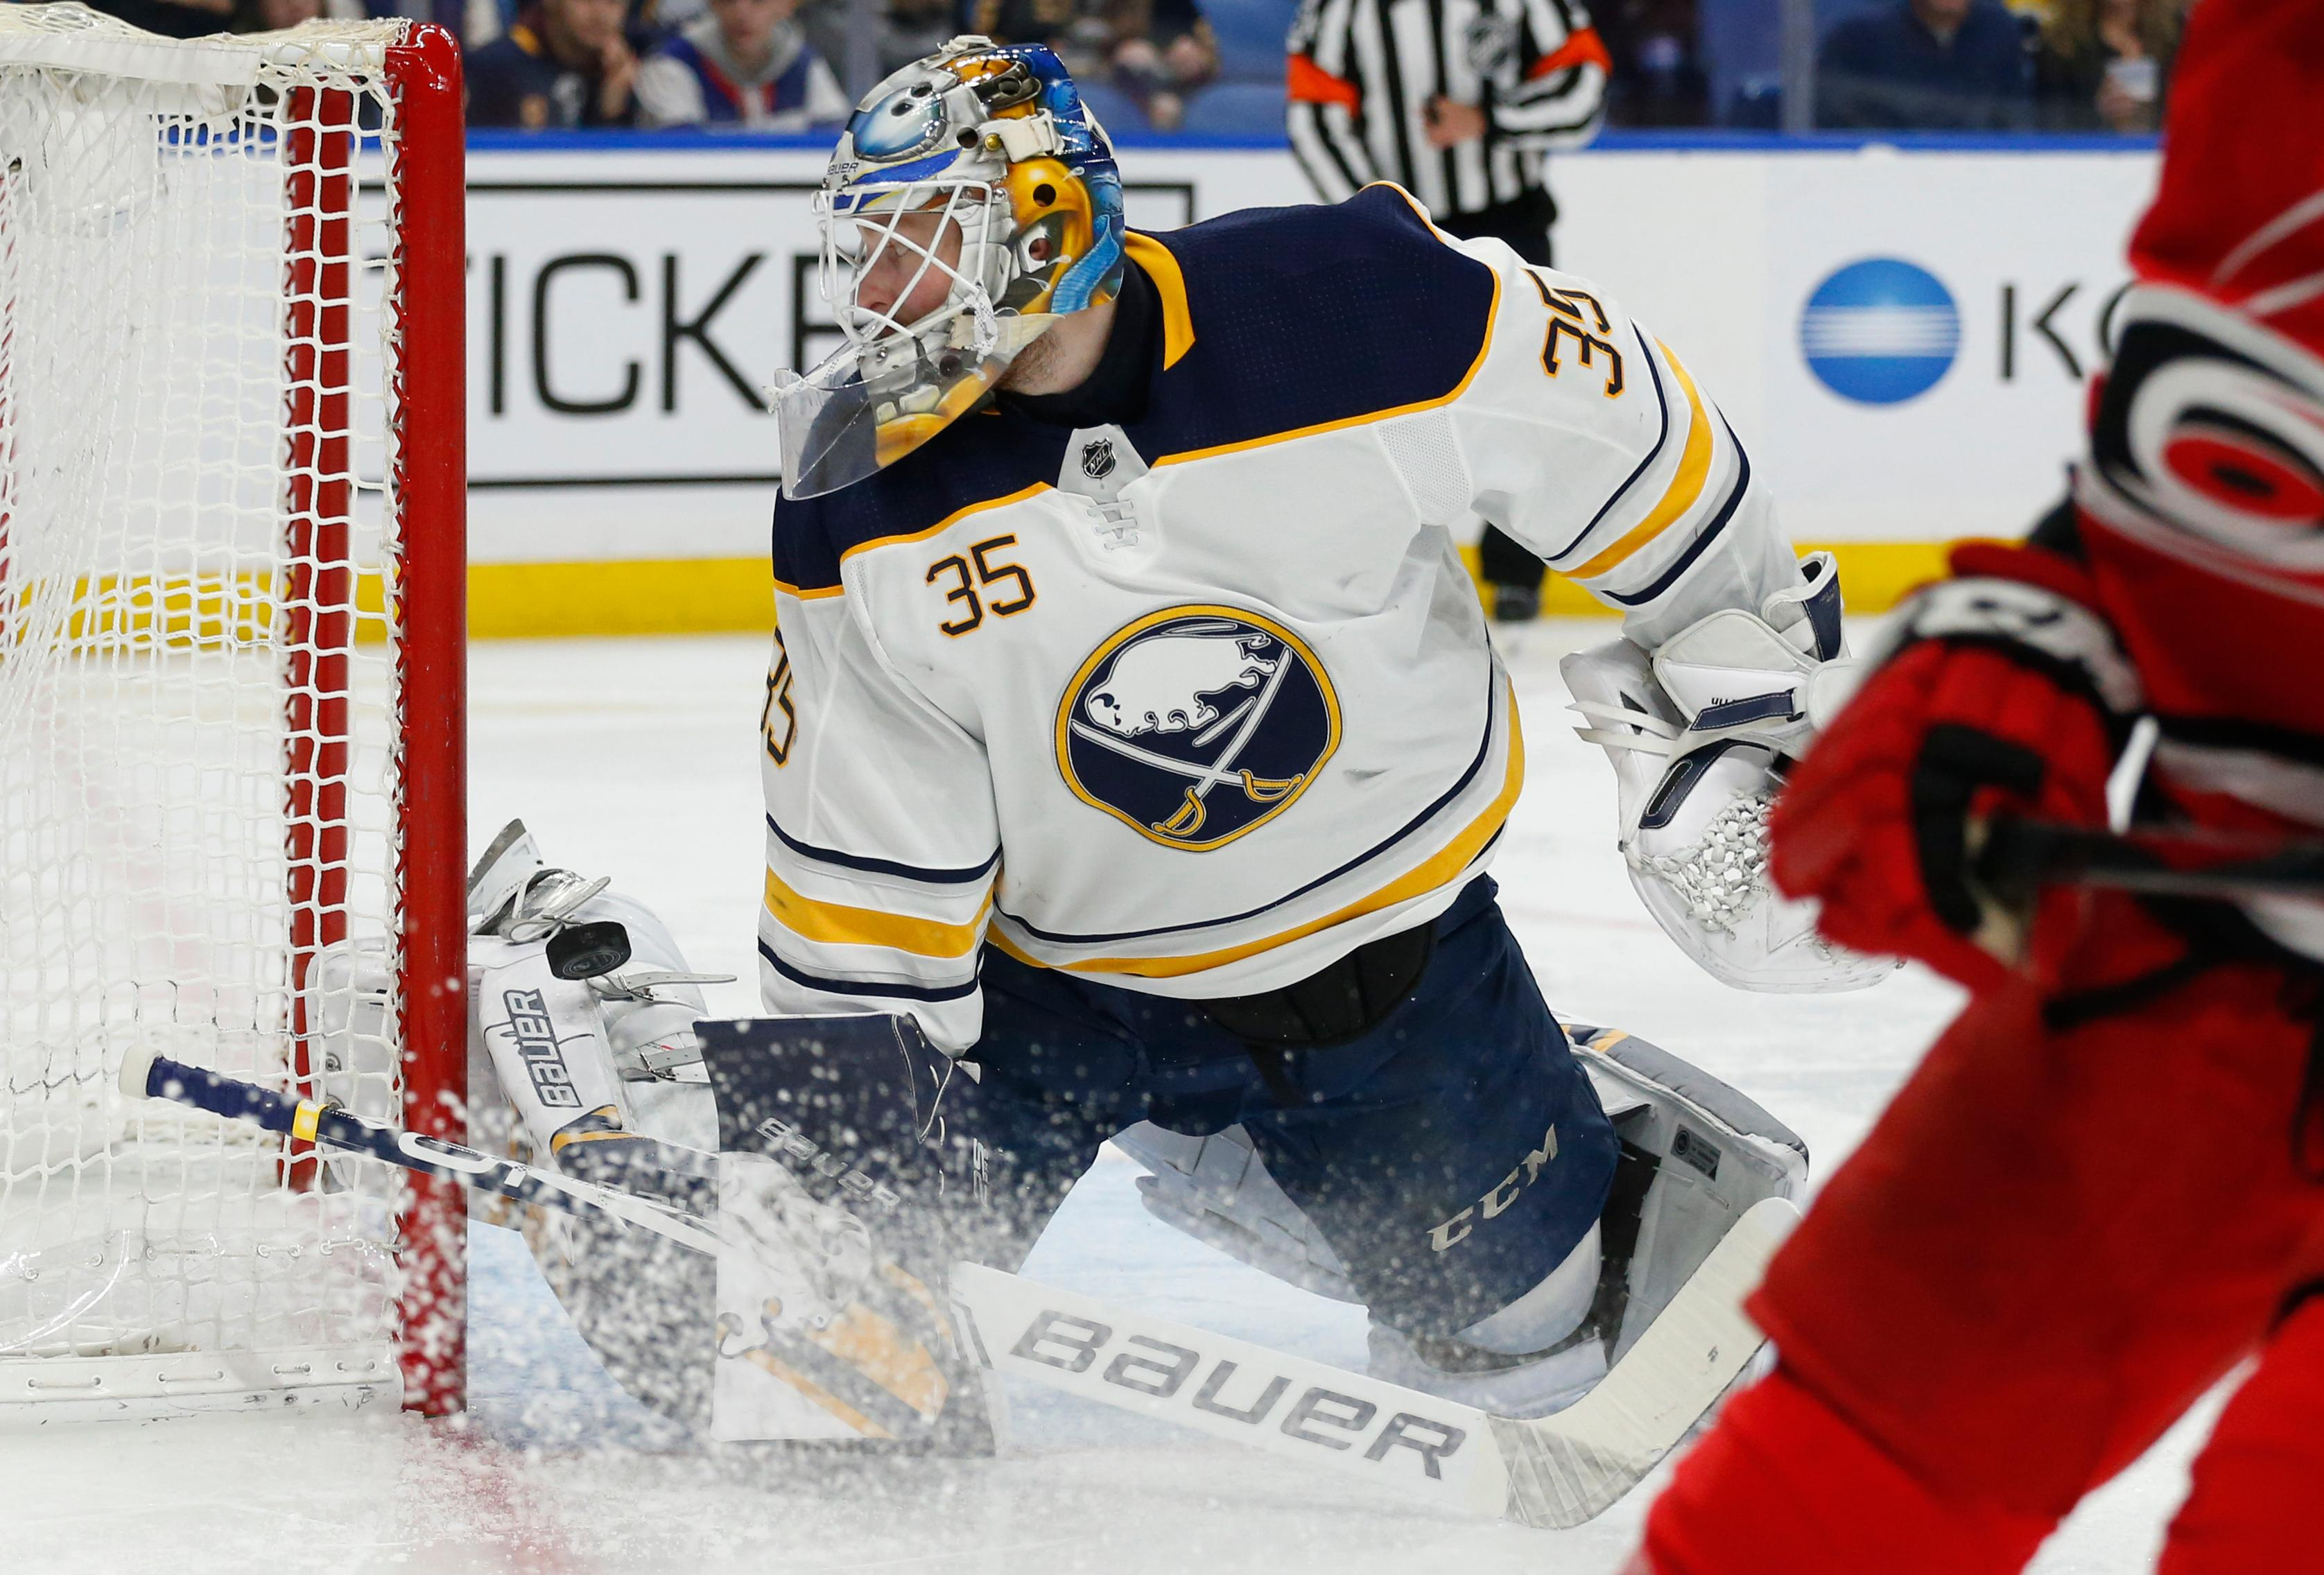 Buffalo Sabres goalie Linus Ullmark (35) makes a pad save during the second period of an NHL hockey game against the Carolina Hurricanes on Thursday, Feb. 7, 2019, in Buffalo N.Y. (AP Photo/Jeffrey T. Barnes)